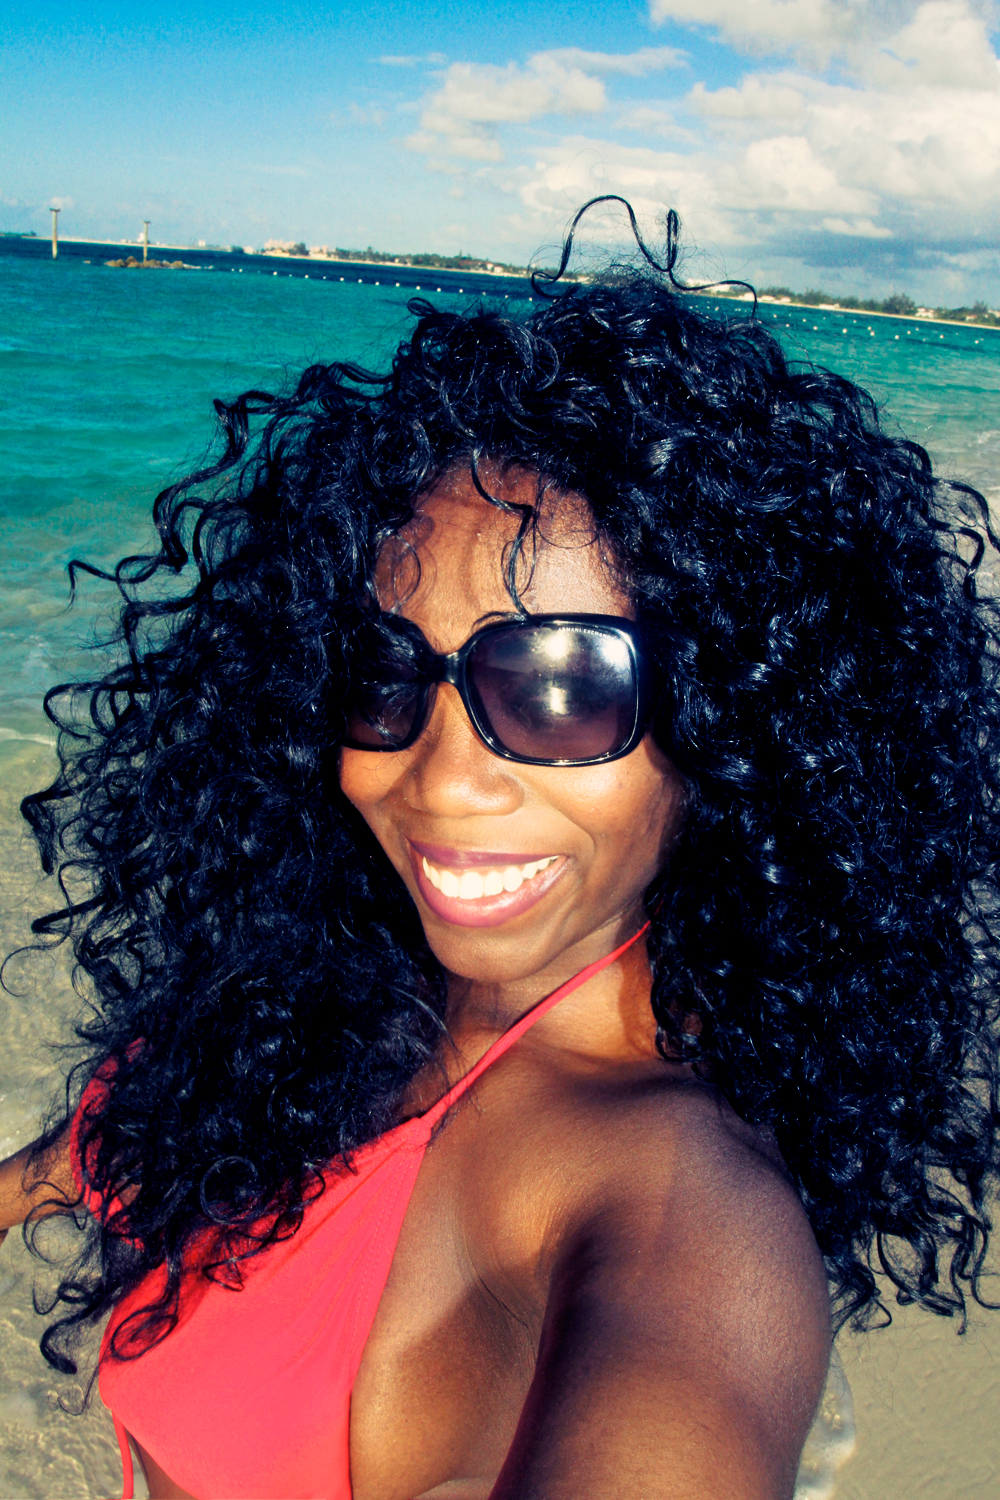 Me in the Bahamas in 2011